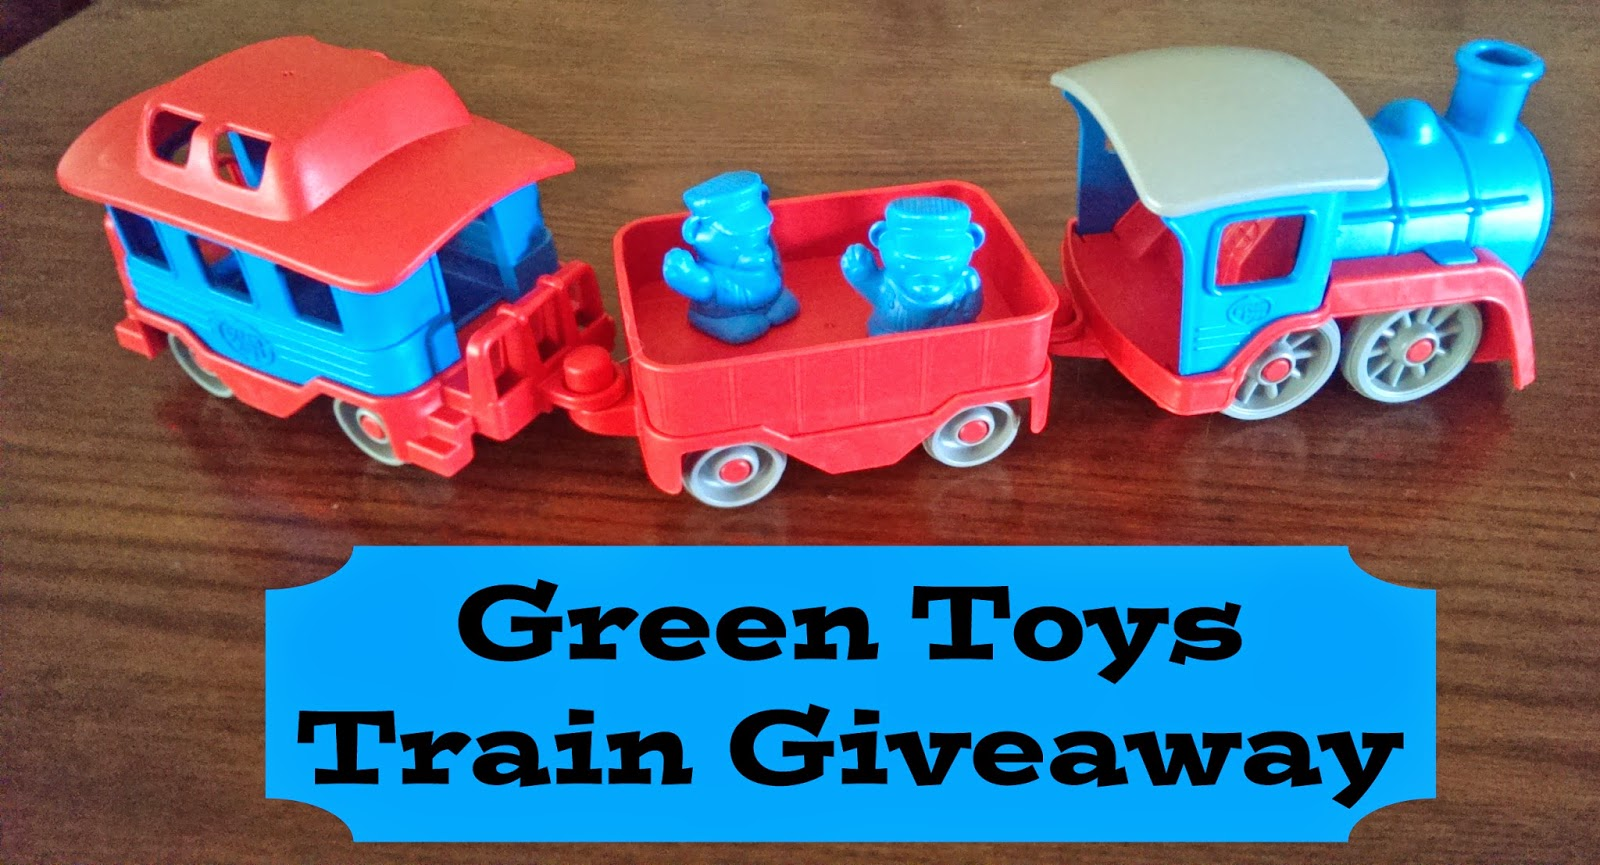 Green Toys Train Giveaway